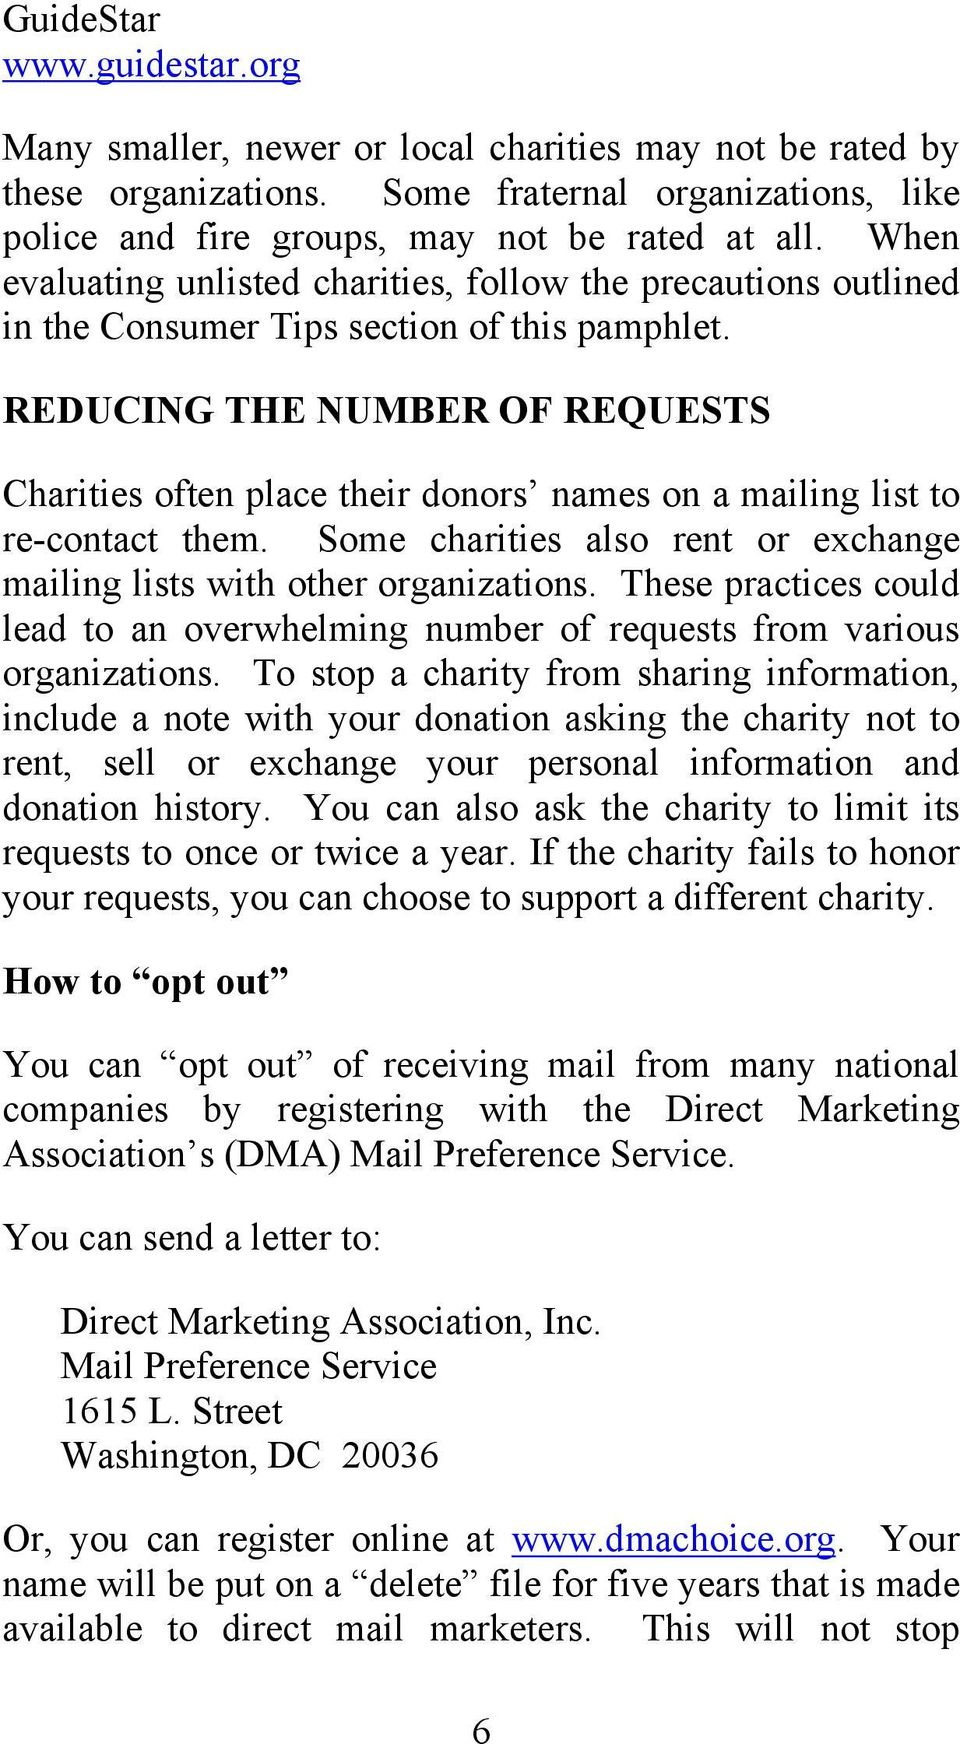 REDUCING THE NUMBER OF REQUESTS Charities often place their donors names on a mailing list to re-contact them. Some charities also rent or exchange mailing lists with other organizations.